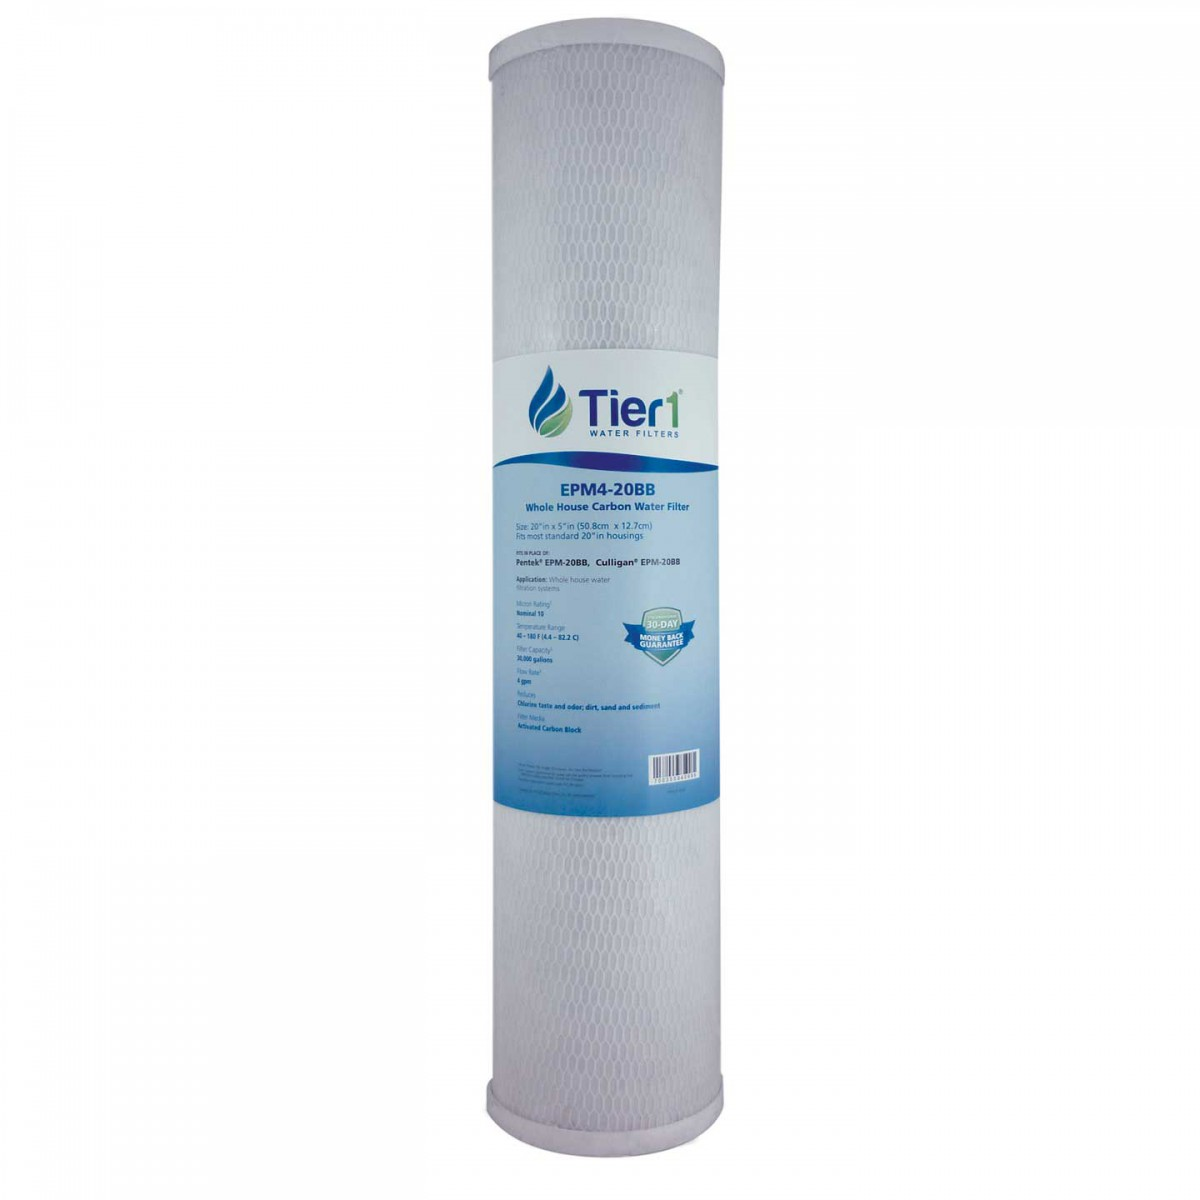 House Water Filter Epm 20bb Pentek 20x45 Inch Comparable Carbon Whole House Water Filter